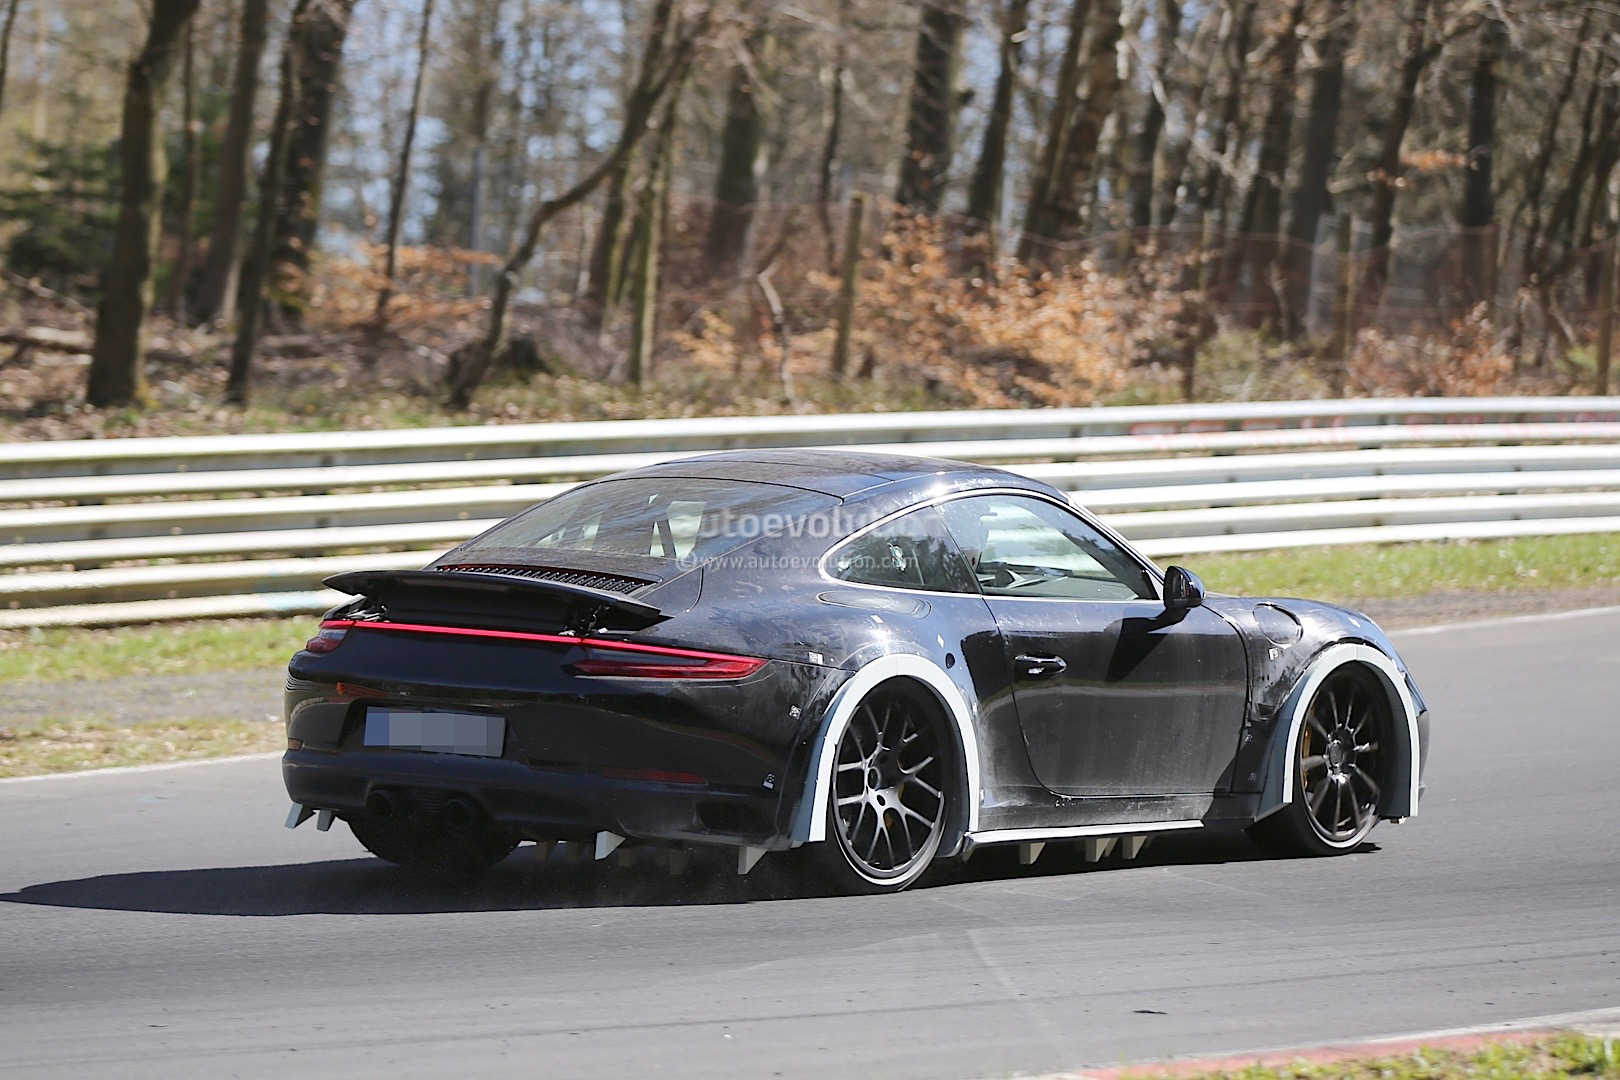 2019 Porsche 911 Chassis Development Mule Spied on the ...